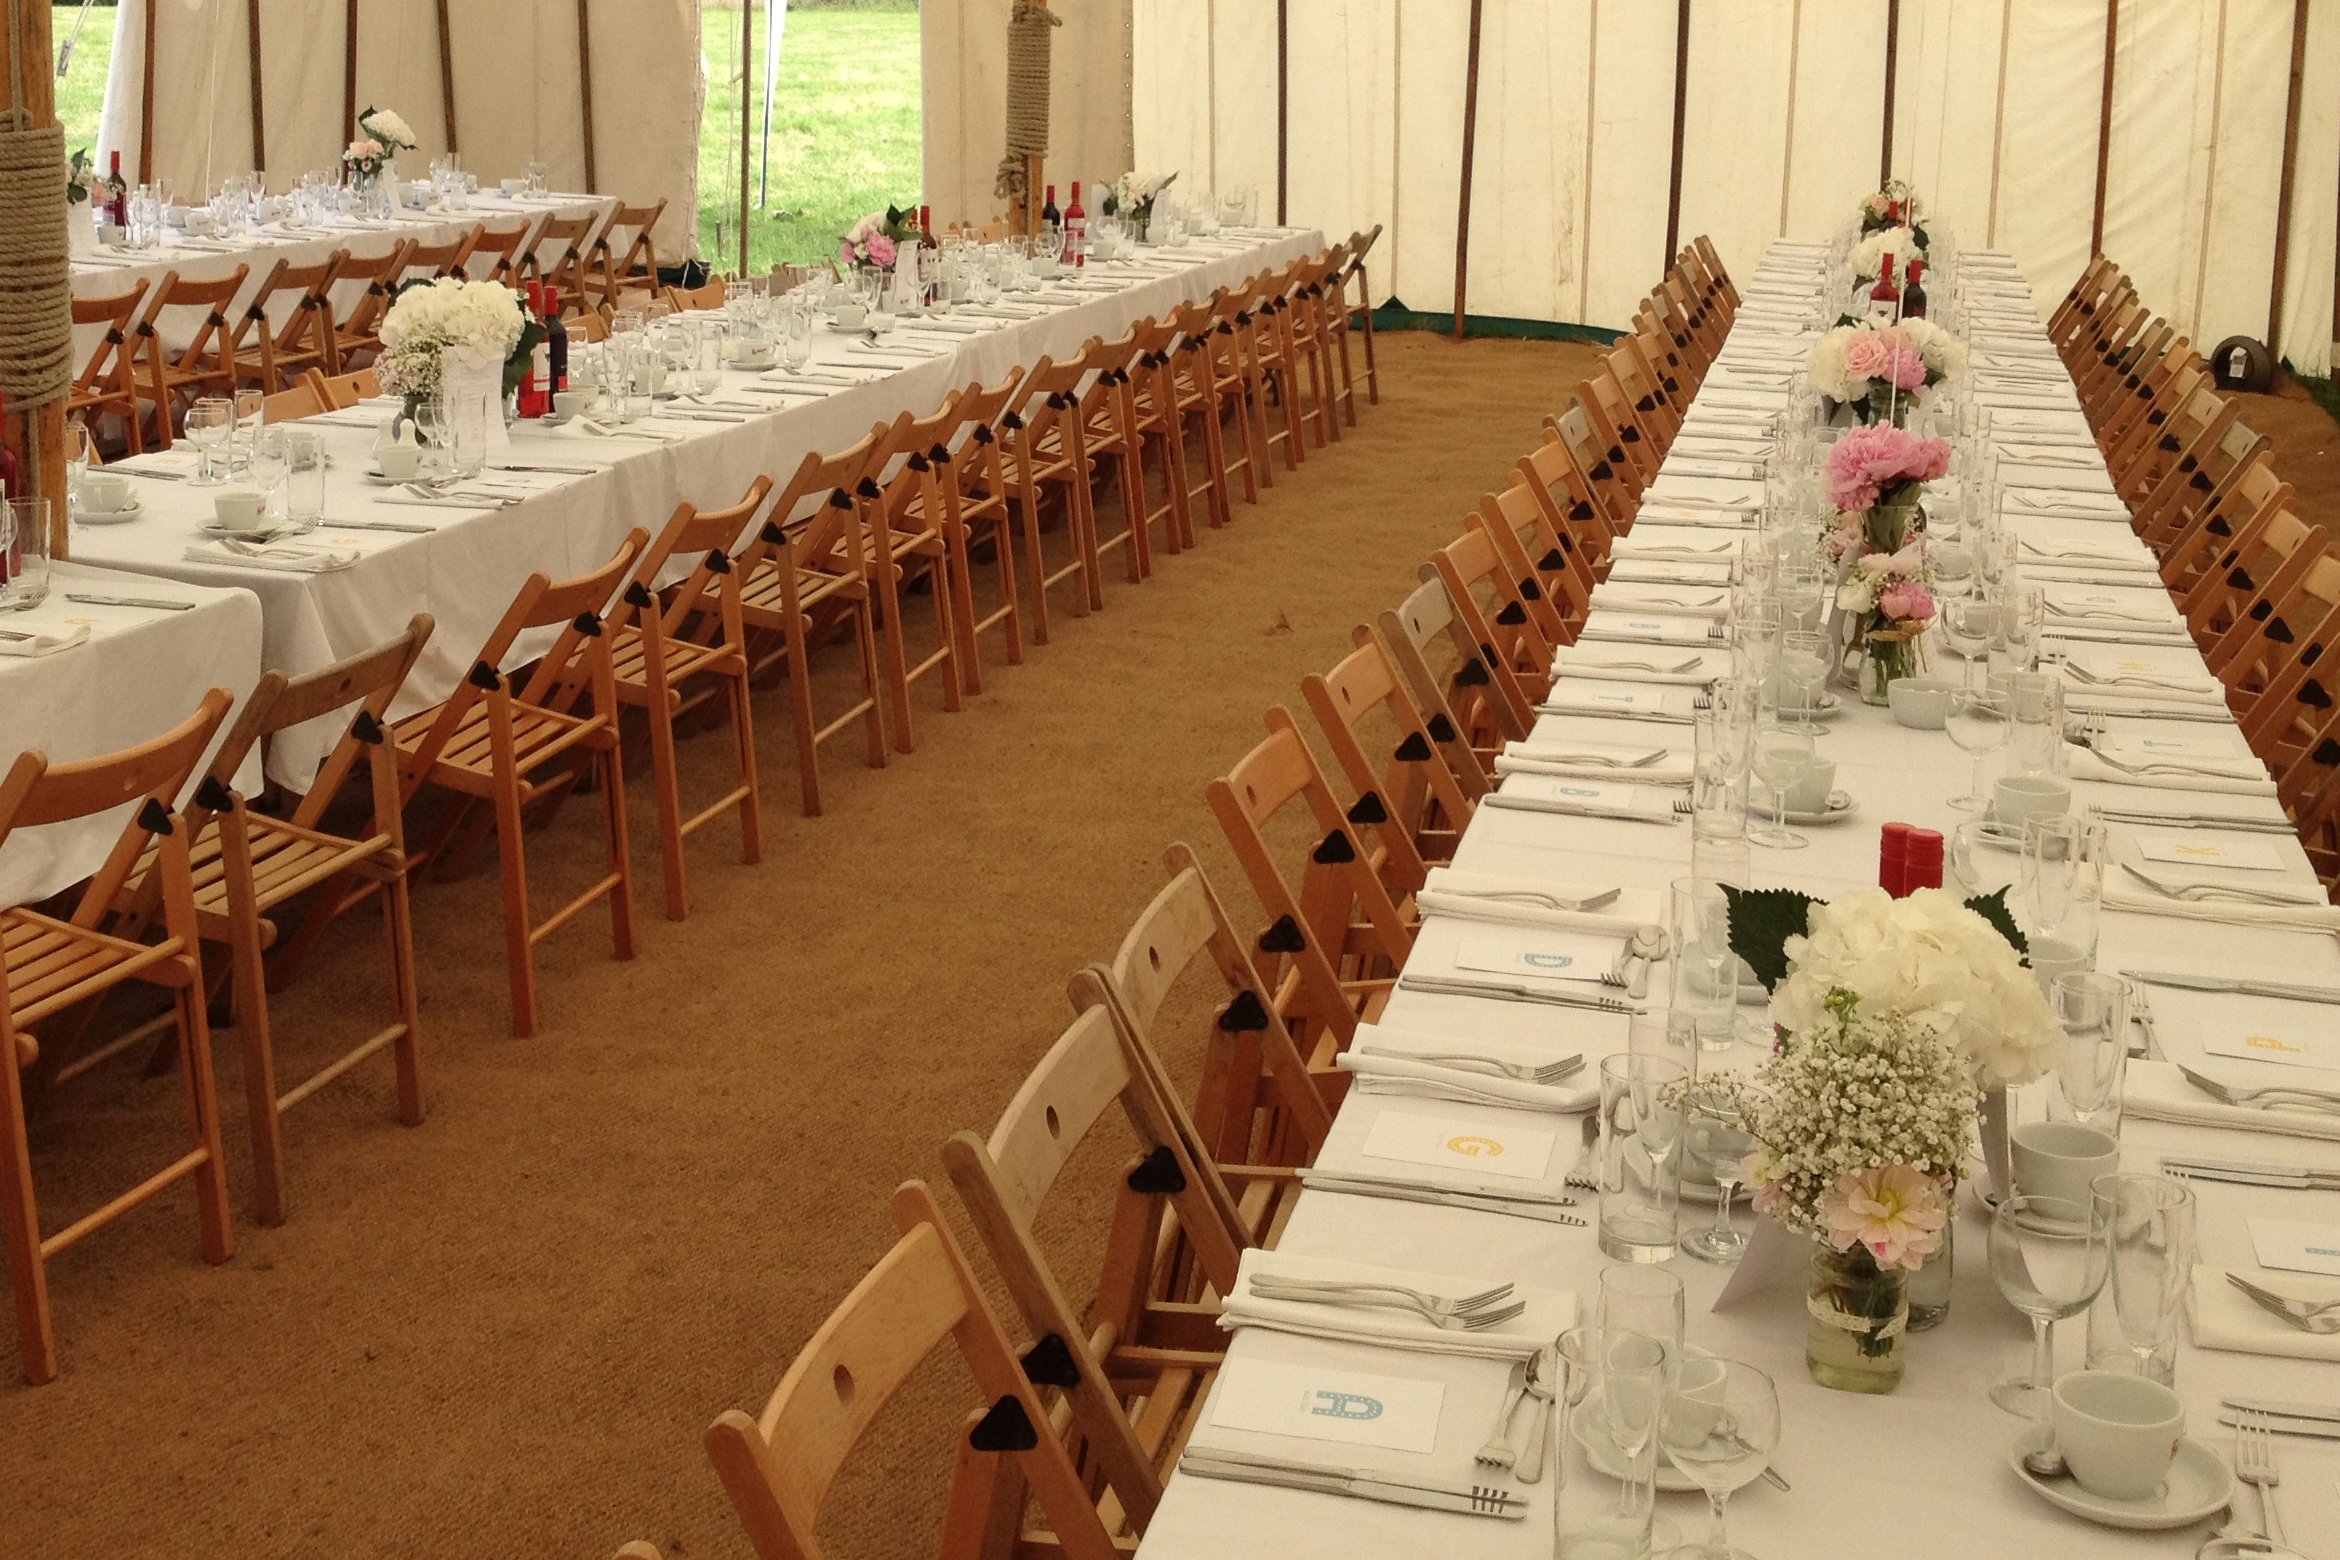 Marquee wedding with catering by PJ taste in Derbyshire